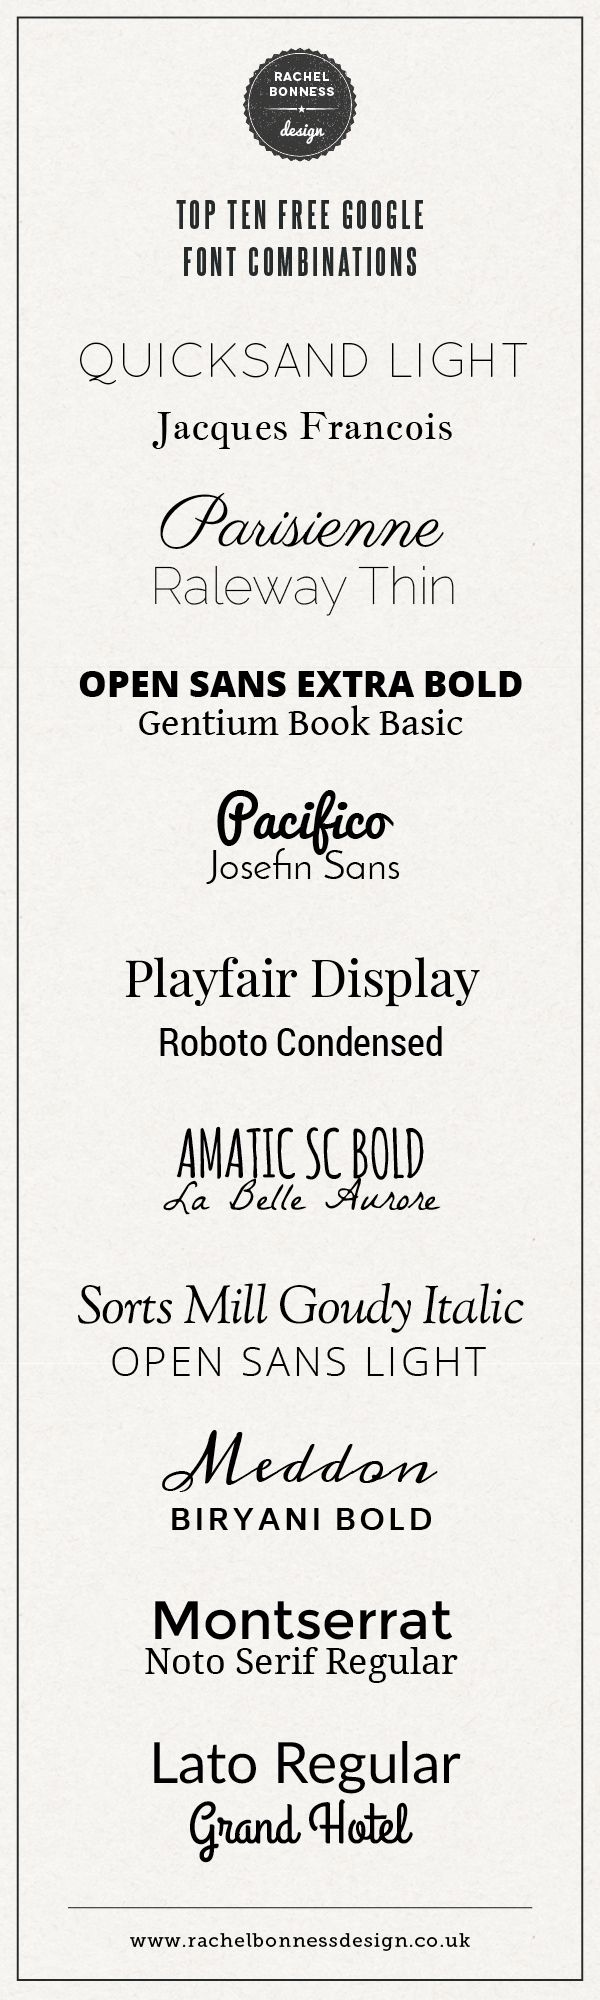 Top Ten Free Google Font Combinations Best Free Typography